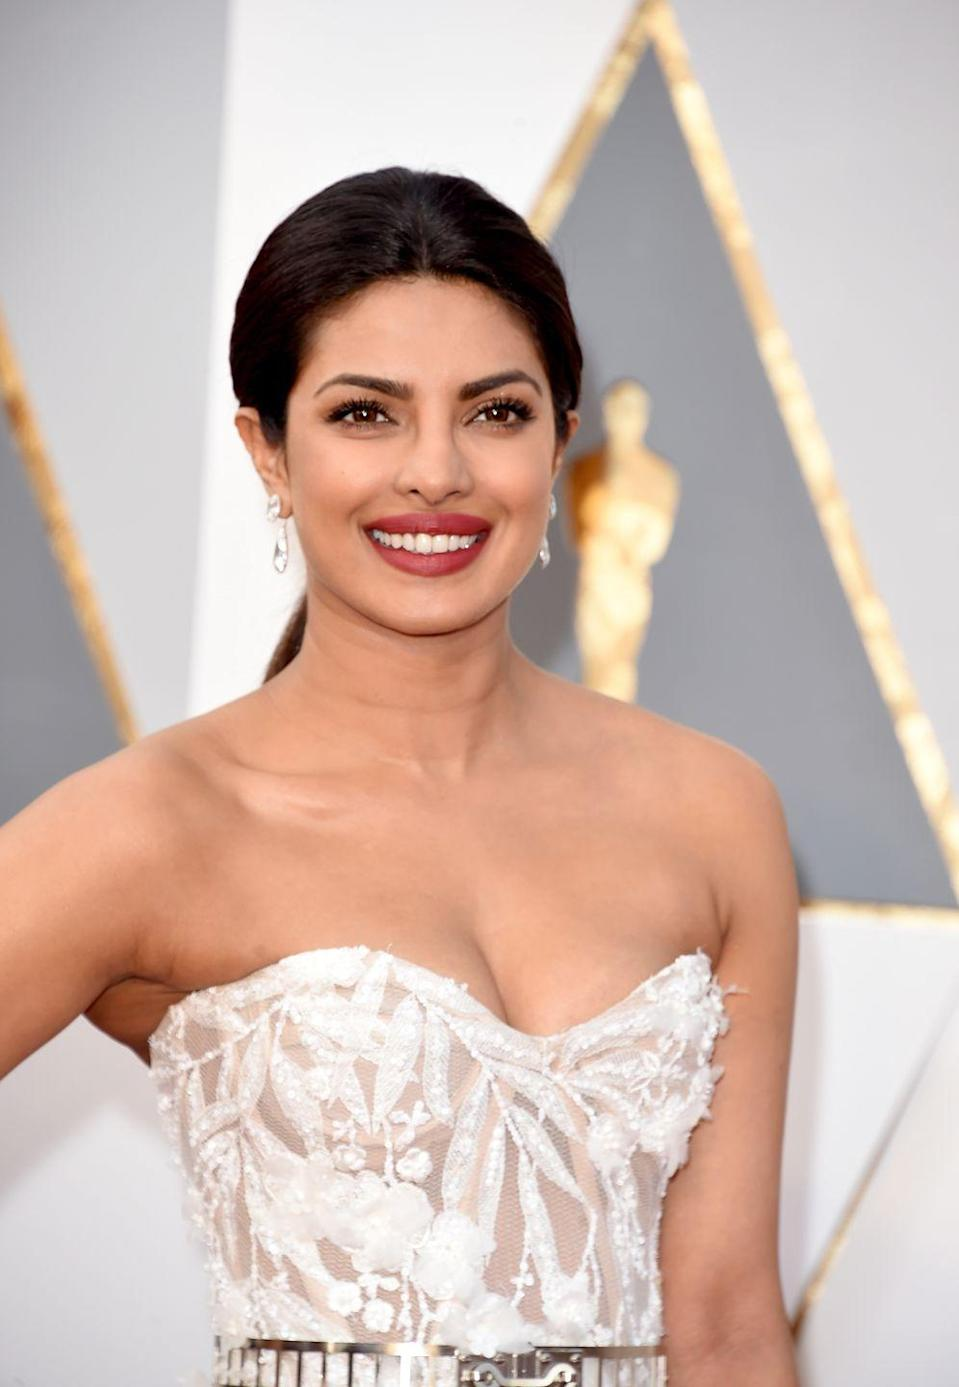 <p>After her reign of Miss World ended, Priyanka become one of the most successful actresses in India. In 2015, she landed <em>Quantico</em> on ABC and has appeared in movies like <em>Baywatch </em>and <em>Isn't It Romantic.</em></p>